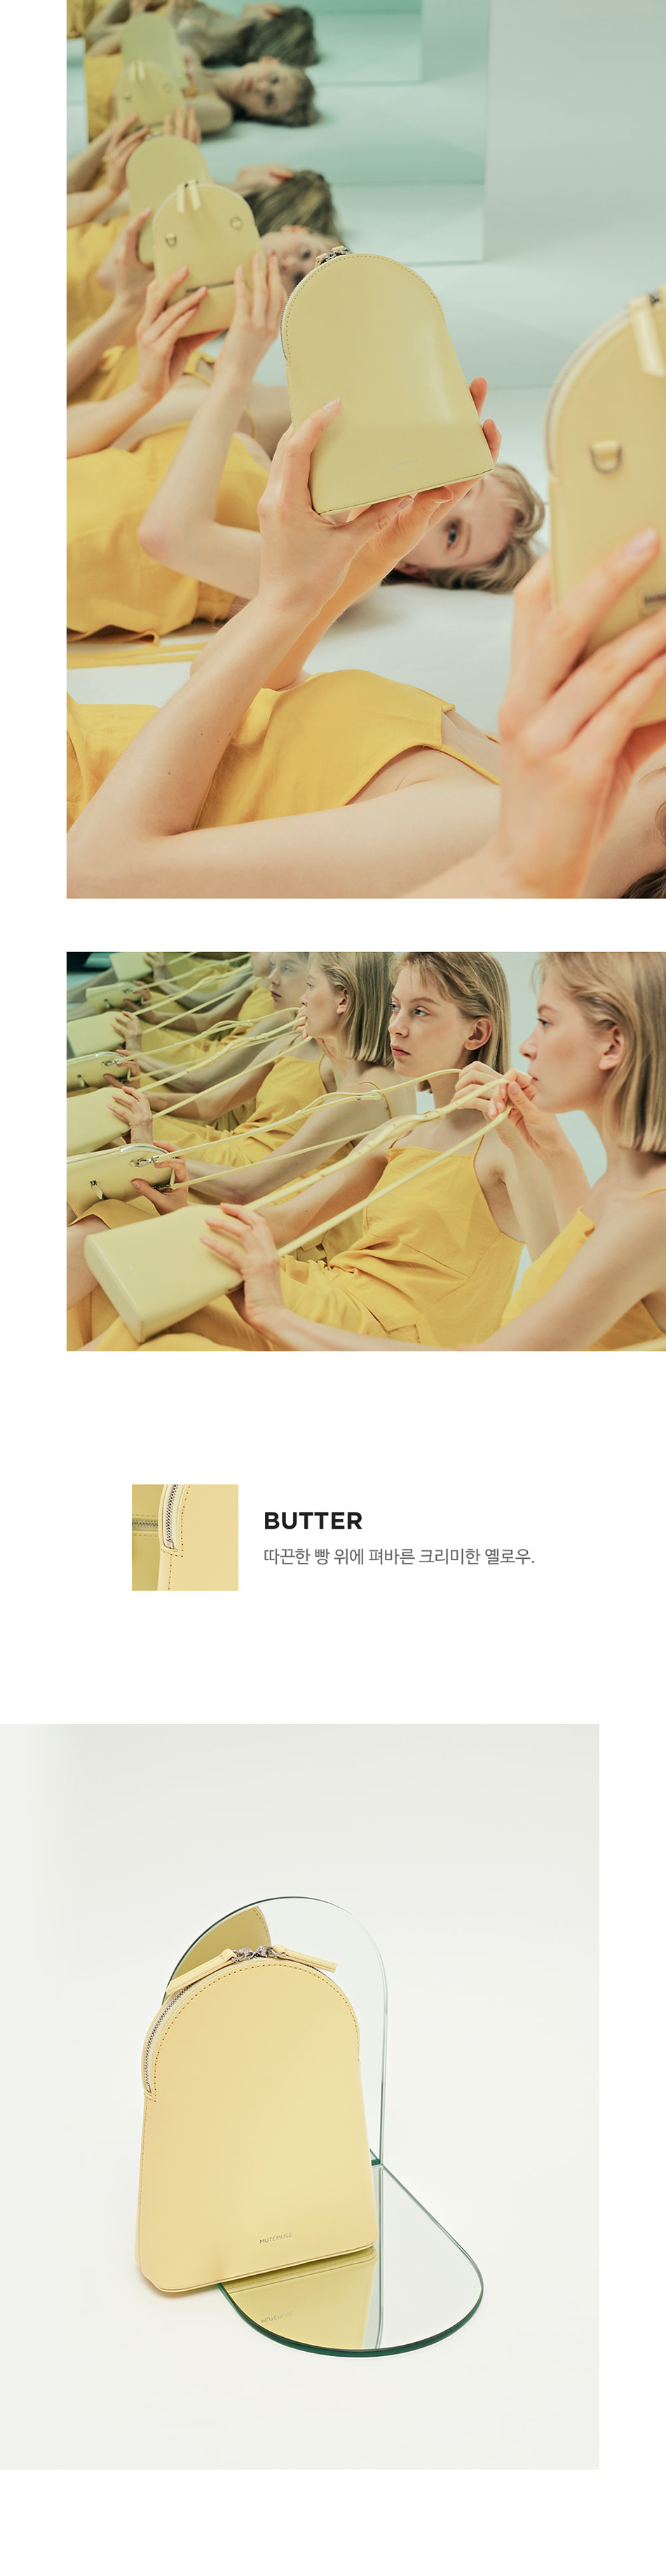 뮤트뮤즈(MUTEMUSE) SNACK Bag (Butter)